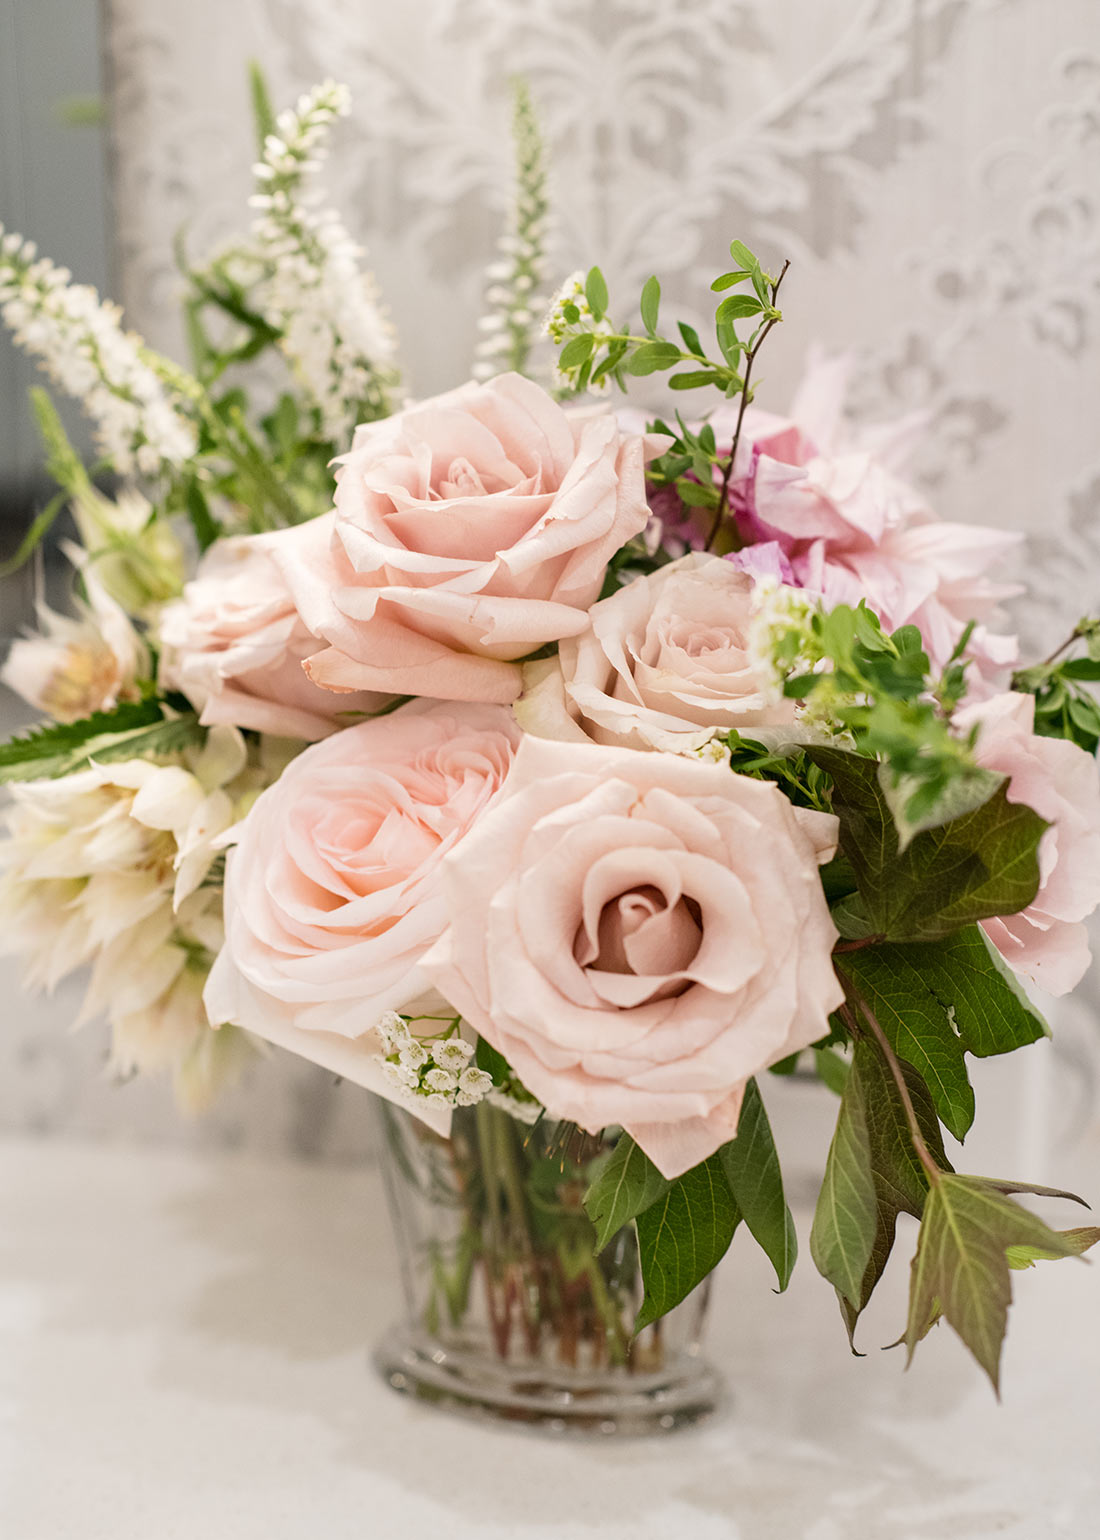 An image of light pink roses floral wedding arrangement with light pink roses